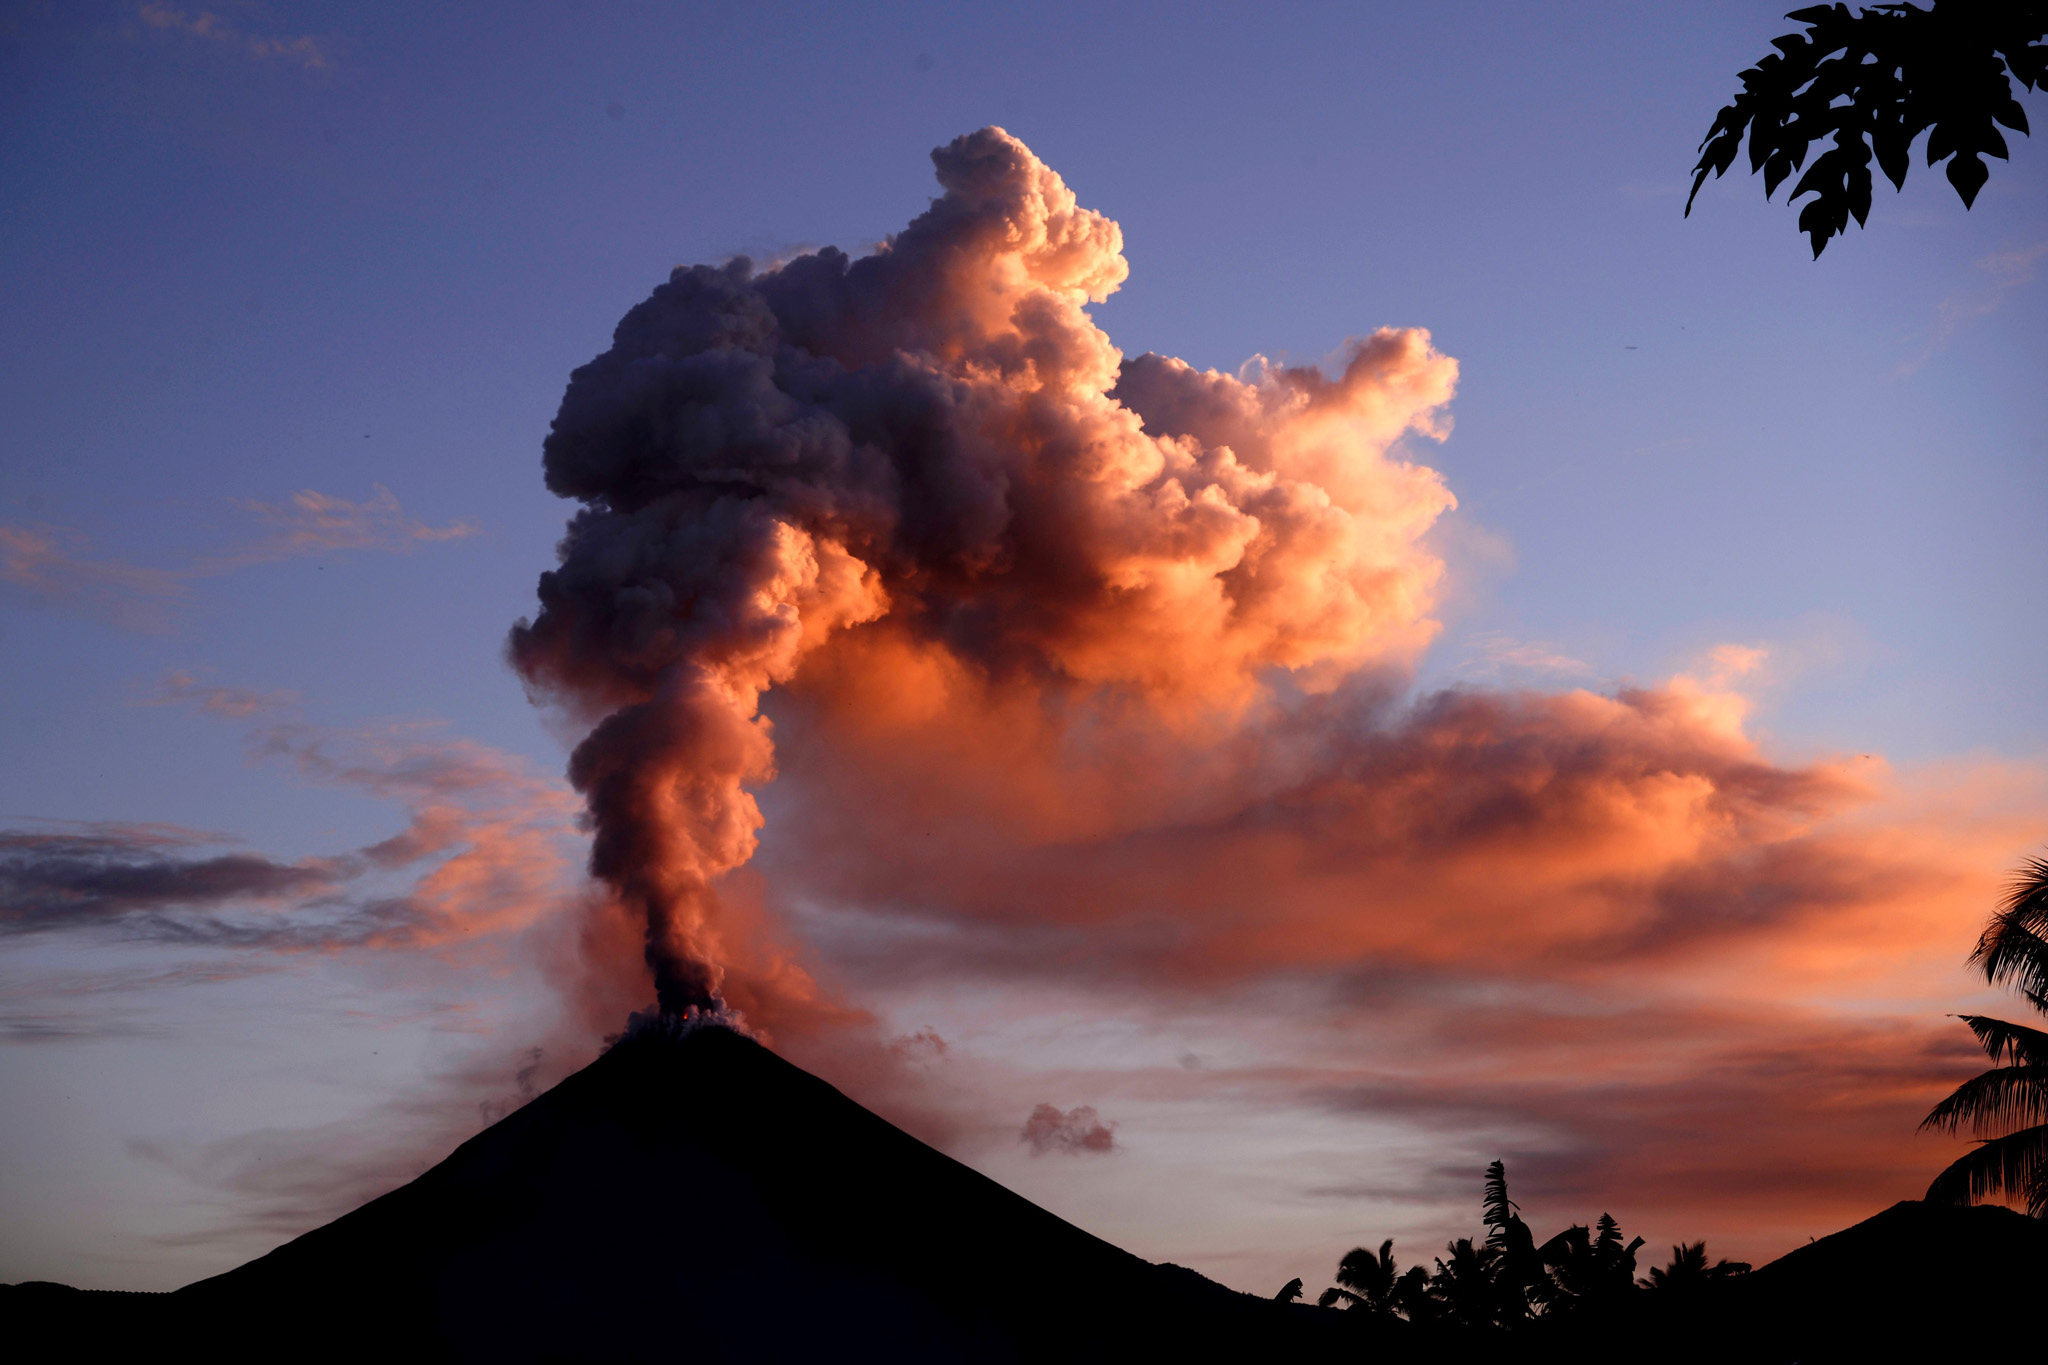 Mount Soputan spews ash into t...TOPSHOT - Mount Soputan spews ash into the air during an eruption seen from Silian village, Southeast Minahasa district in Northern Sulawesi  on January 5, 2016. Mount Soputan is one of the most active volcanoes in North Sulawesi and last erupted in March 2015.  AFP PHOTO / Adi DWI SATRYA / AFP / ADI DWI SATRYAADI DWI SATRYA/AFP/Getty Images